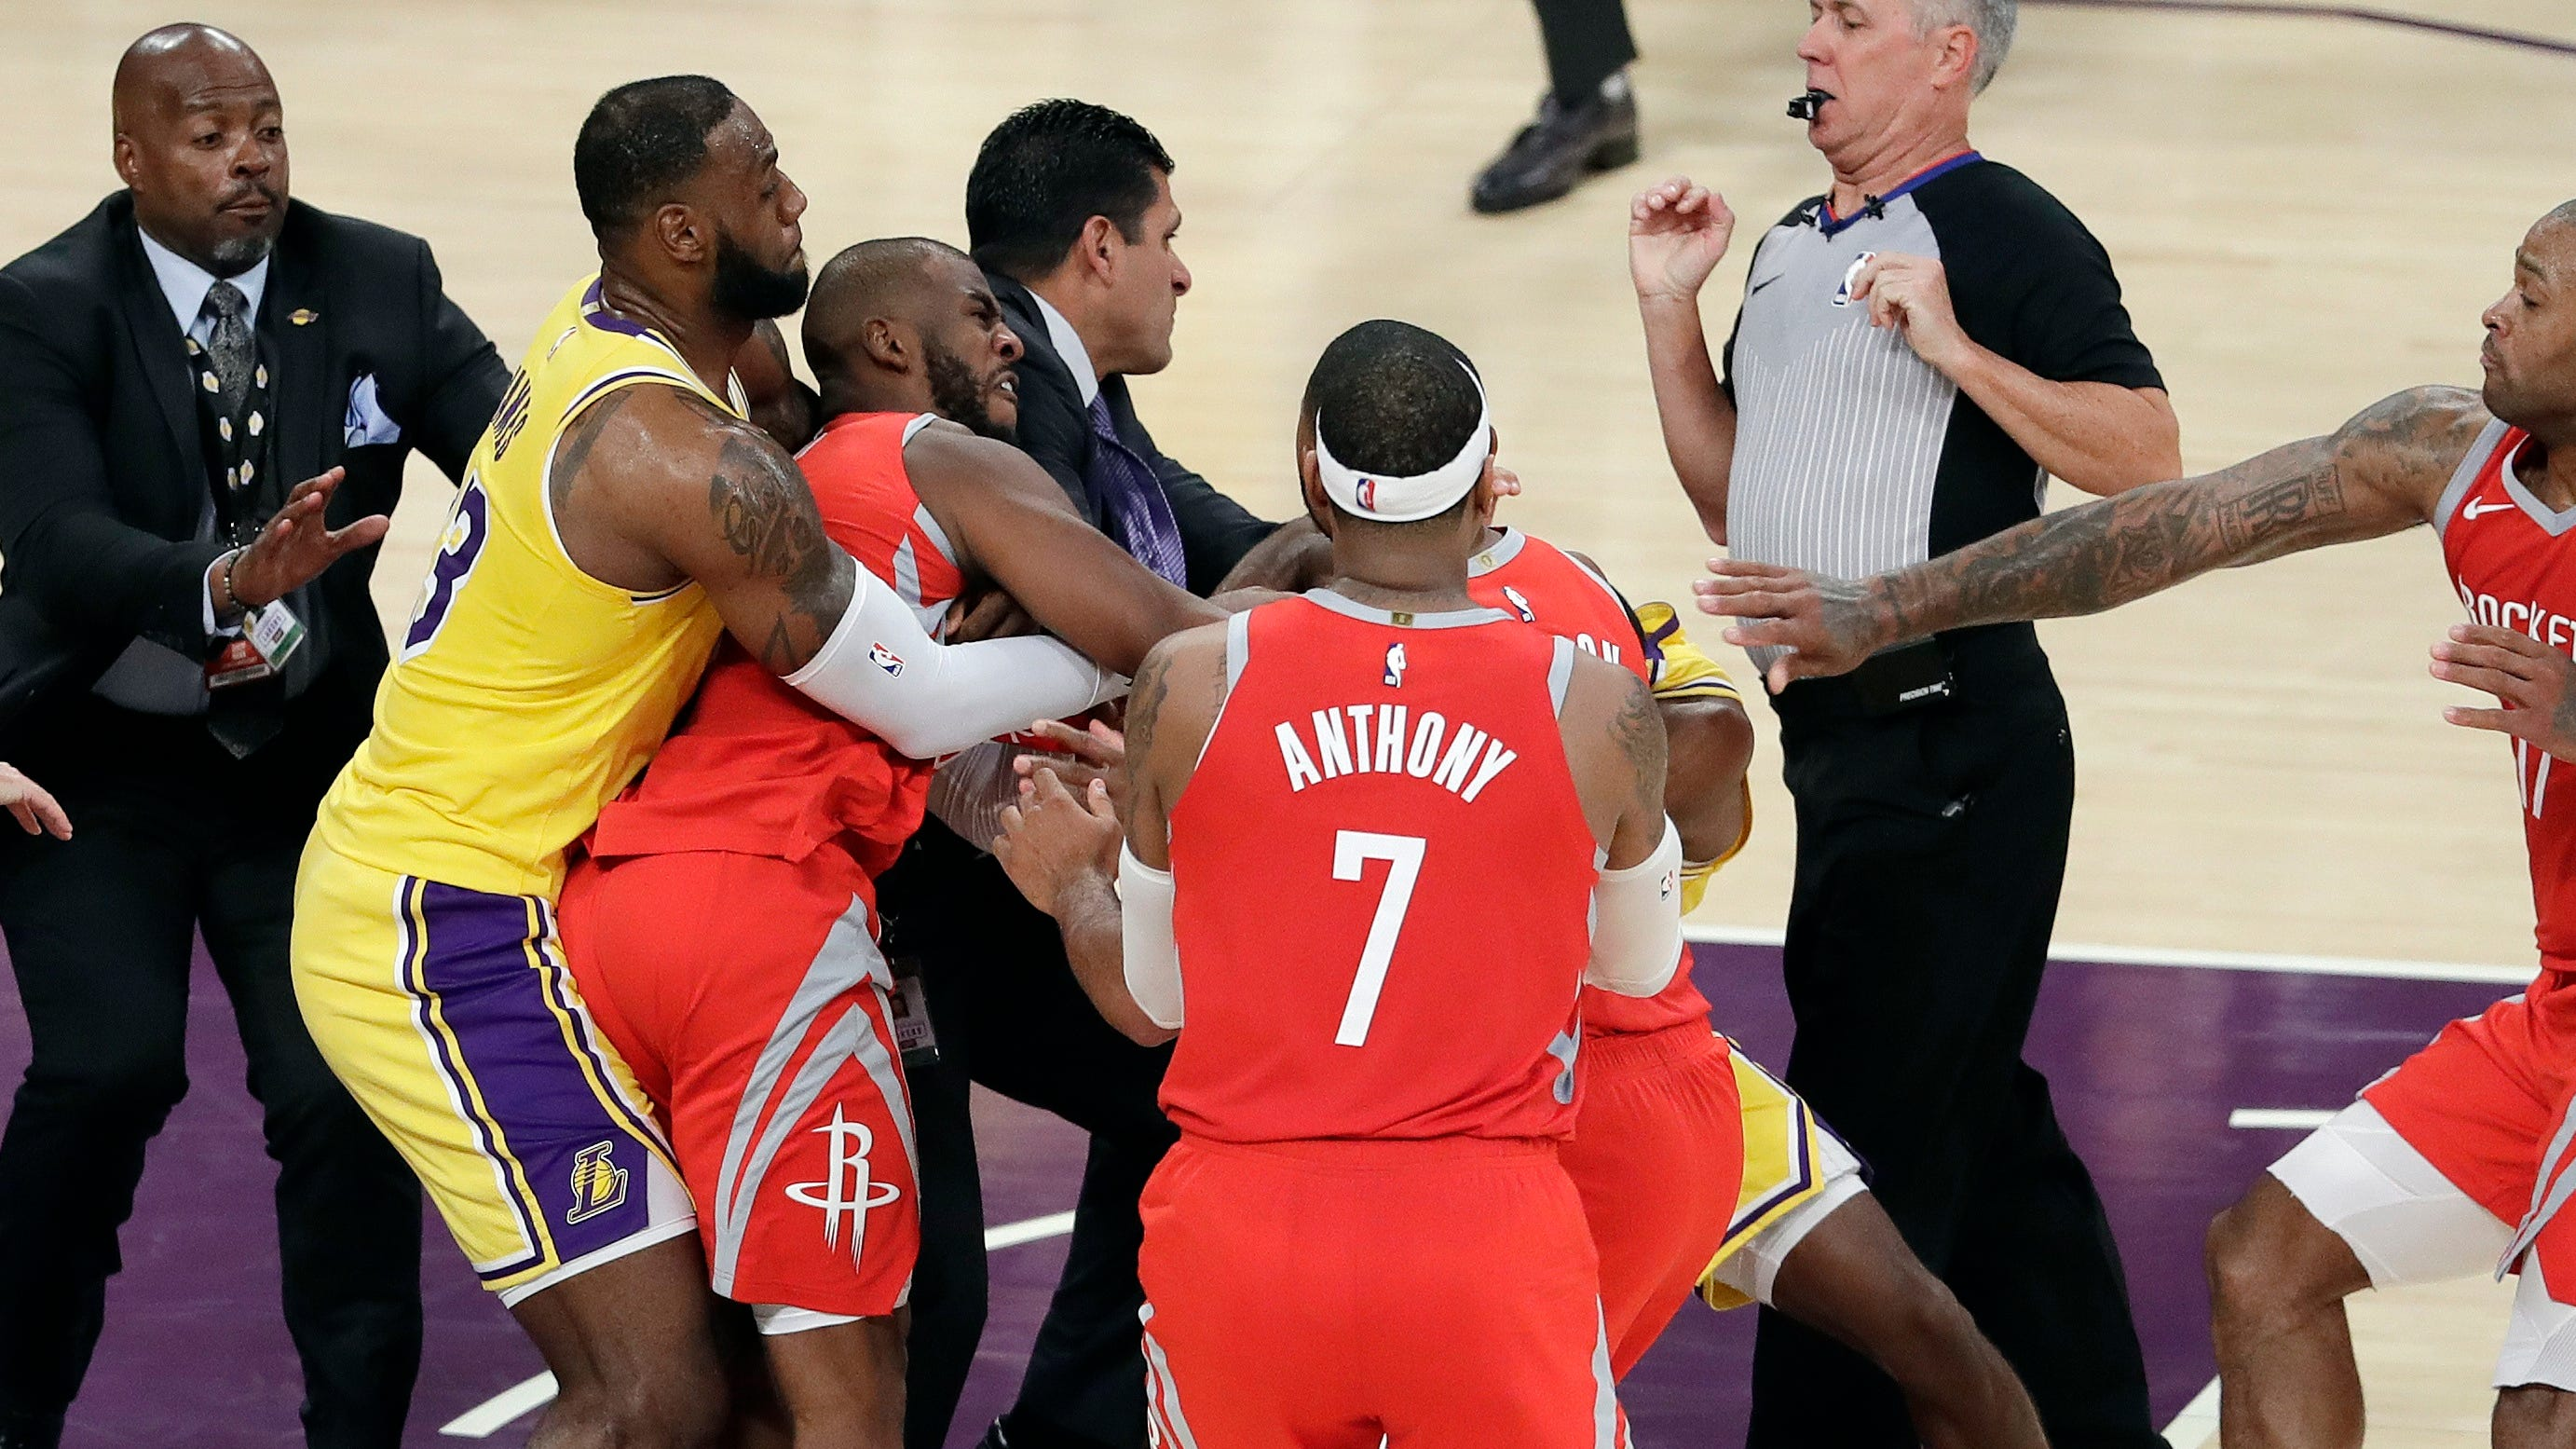 Chris Paul, Rajon Rondo and Brandon Ingram were ejected after the wild melee between the Lakers and Rockets.